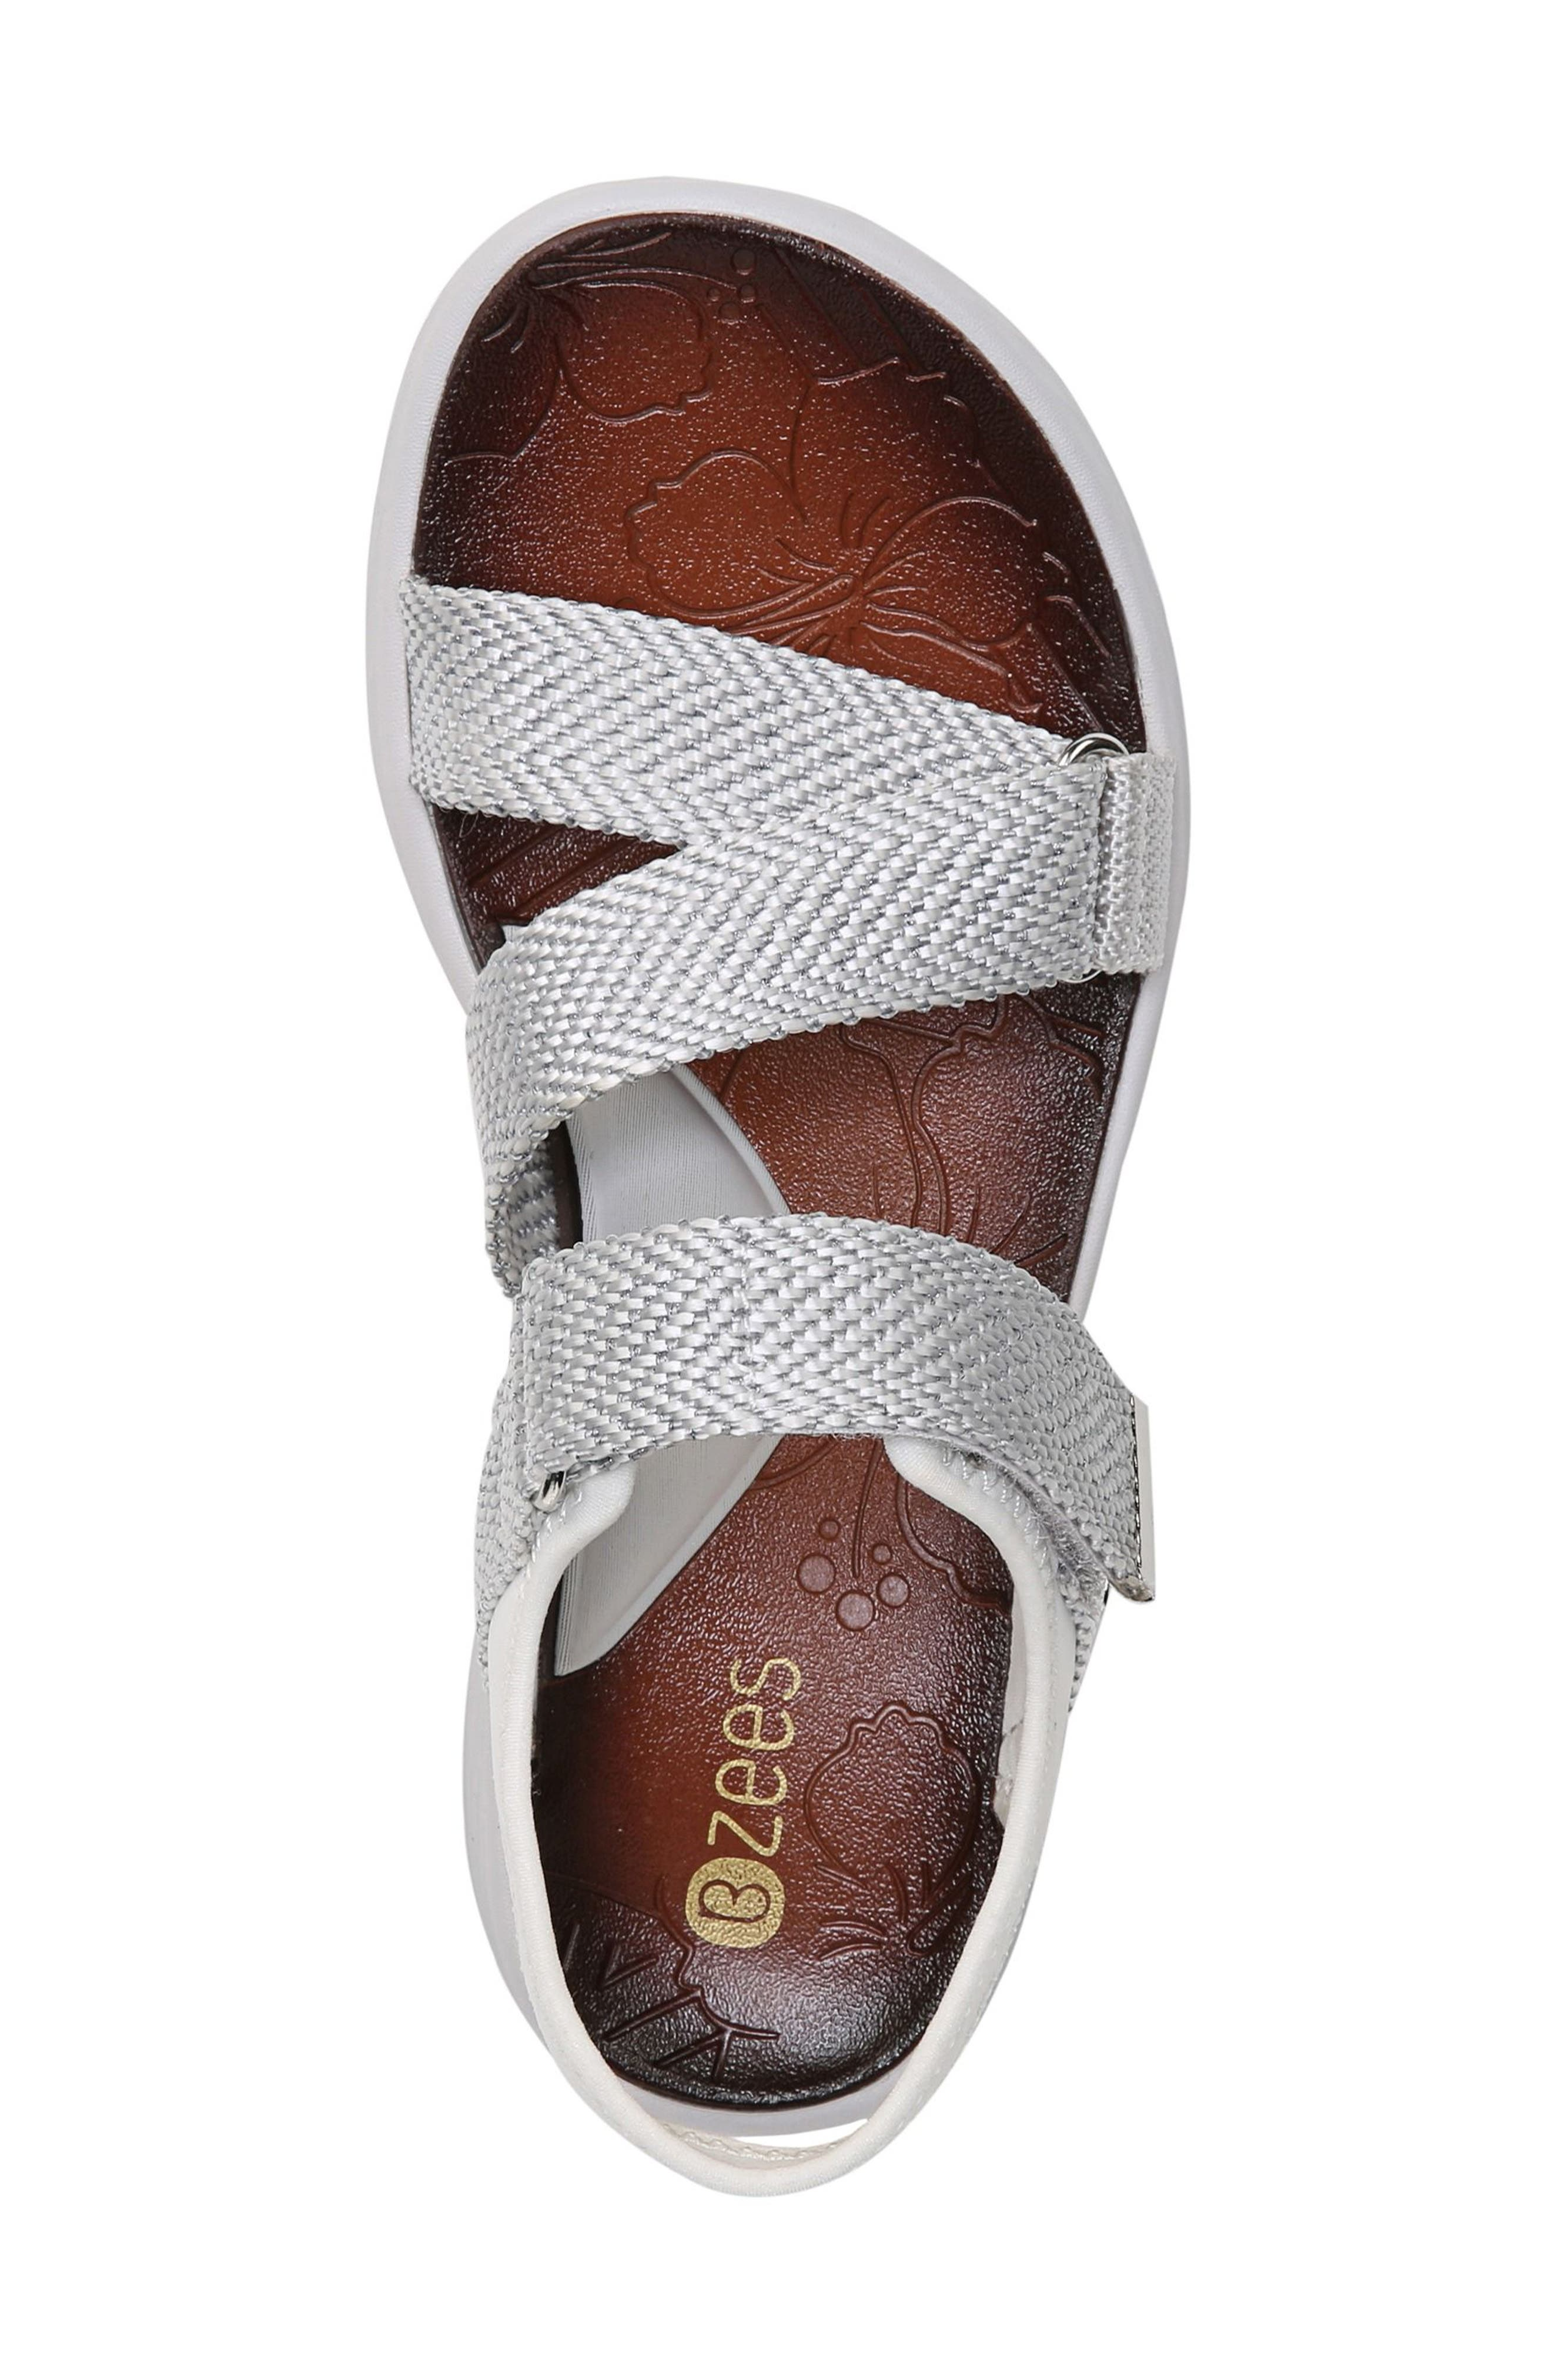 Jive Sandal,                             Alternate thumbnail 6, color,                             White Fabric